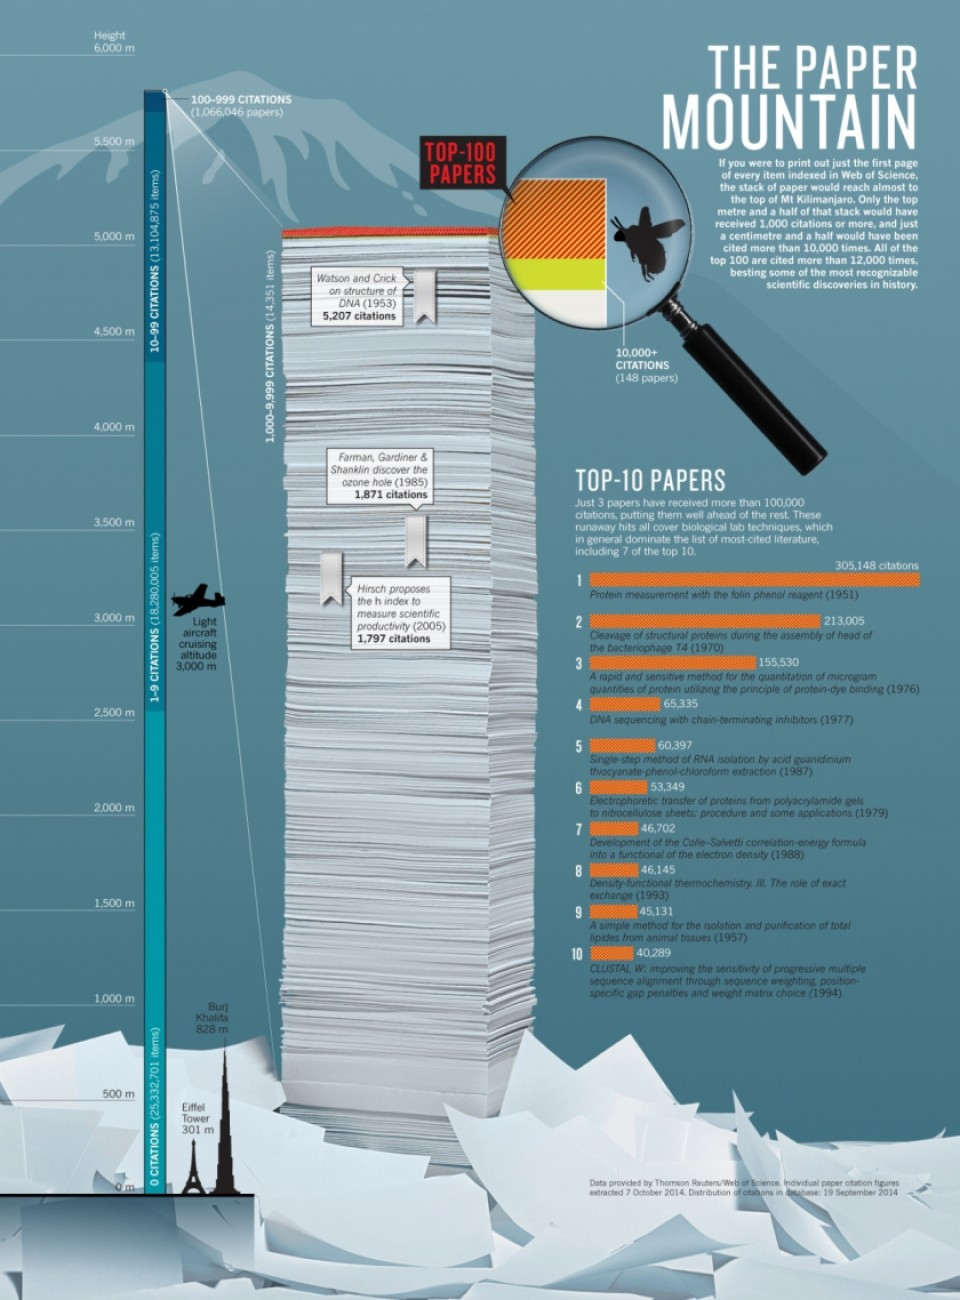 017 Cited Research Paper Nature Top 100 Papers Infographicv2 30 Archaicawful Page Works 960